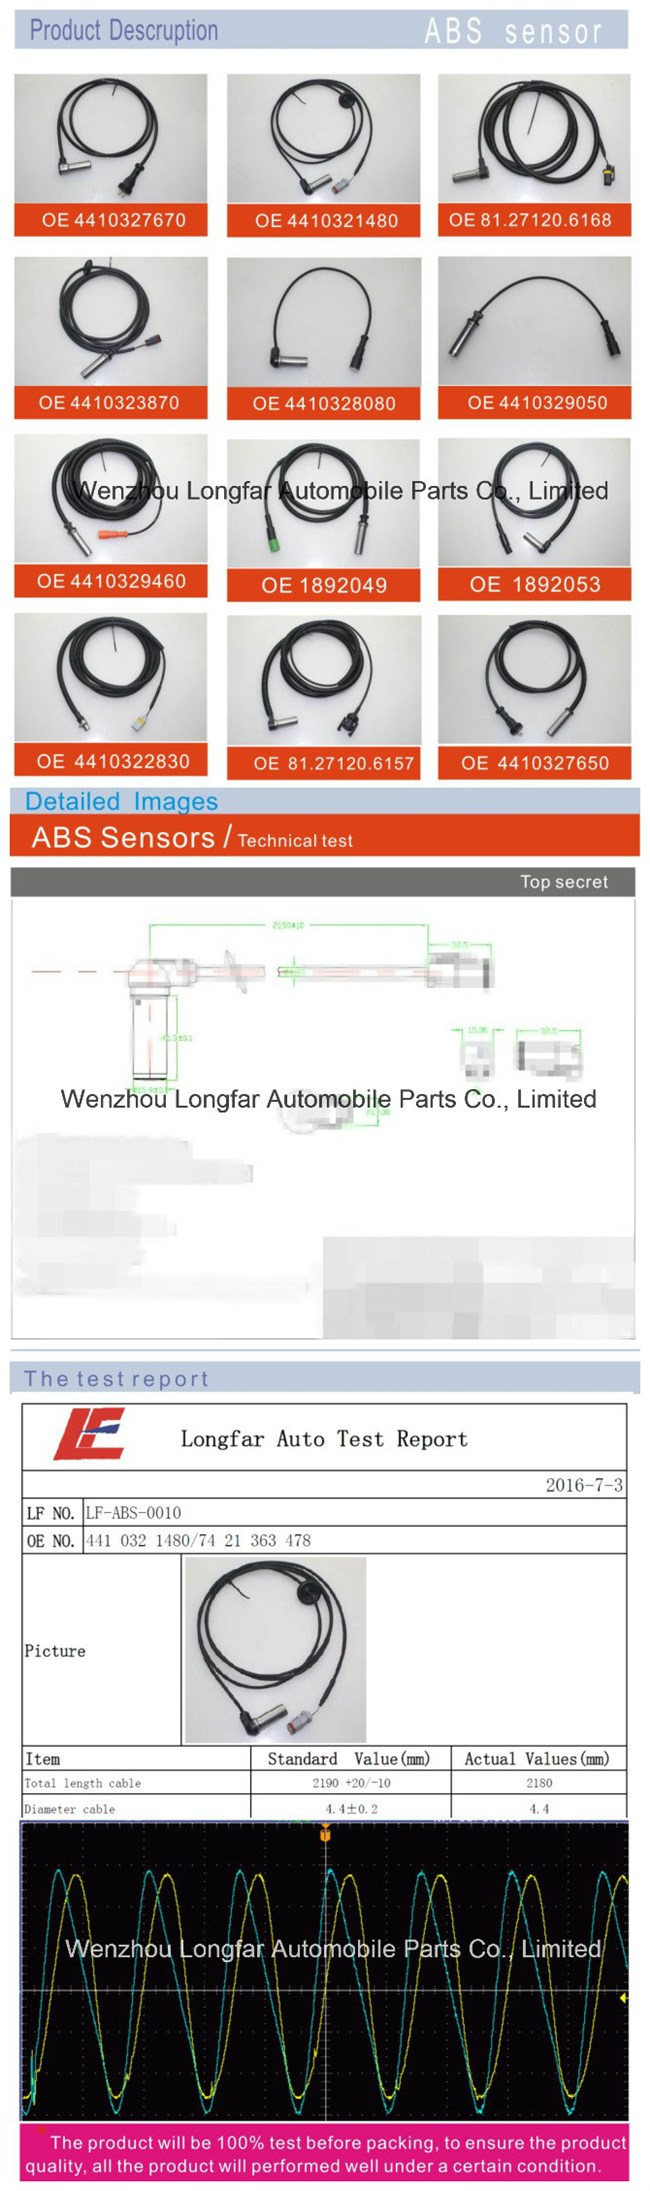 Auto Truck ABS Sensor Anti-Lock Braking System Transducer Indicator Connecting Cable 4497120300, 1738452, N2955010109, Bk8500037, 2260116 for Volvo, Scania, Man